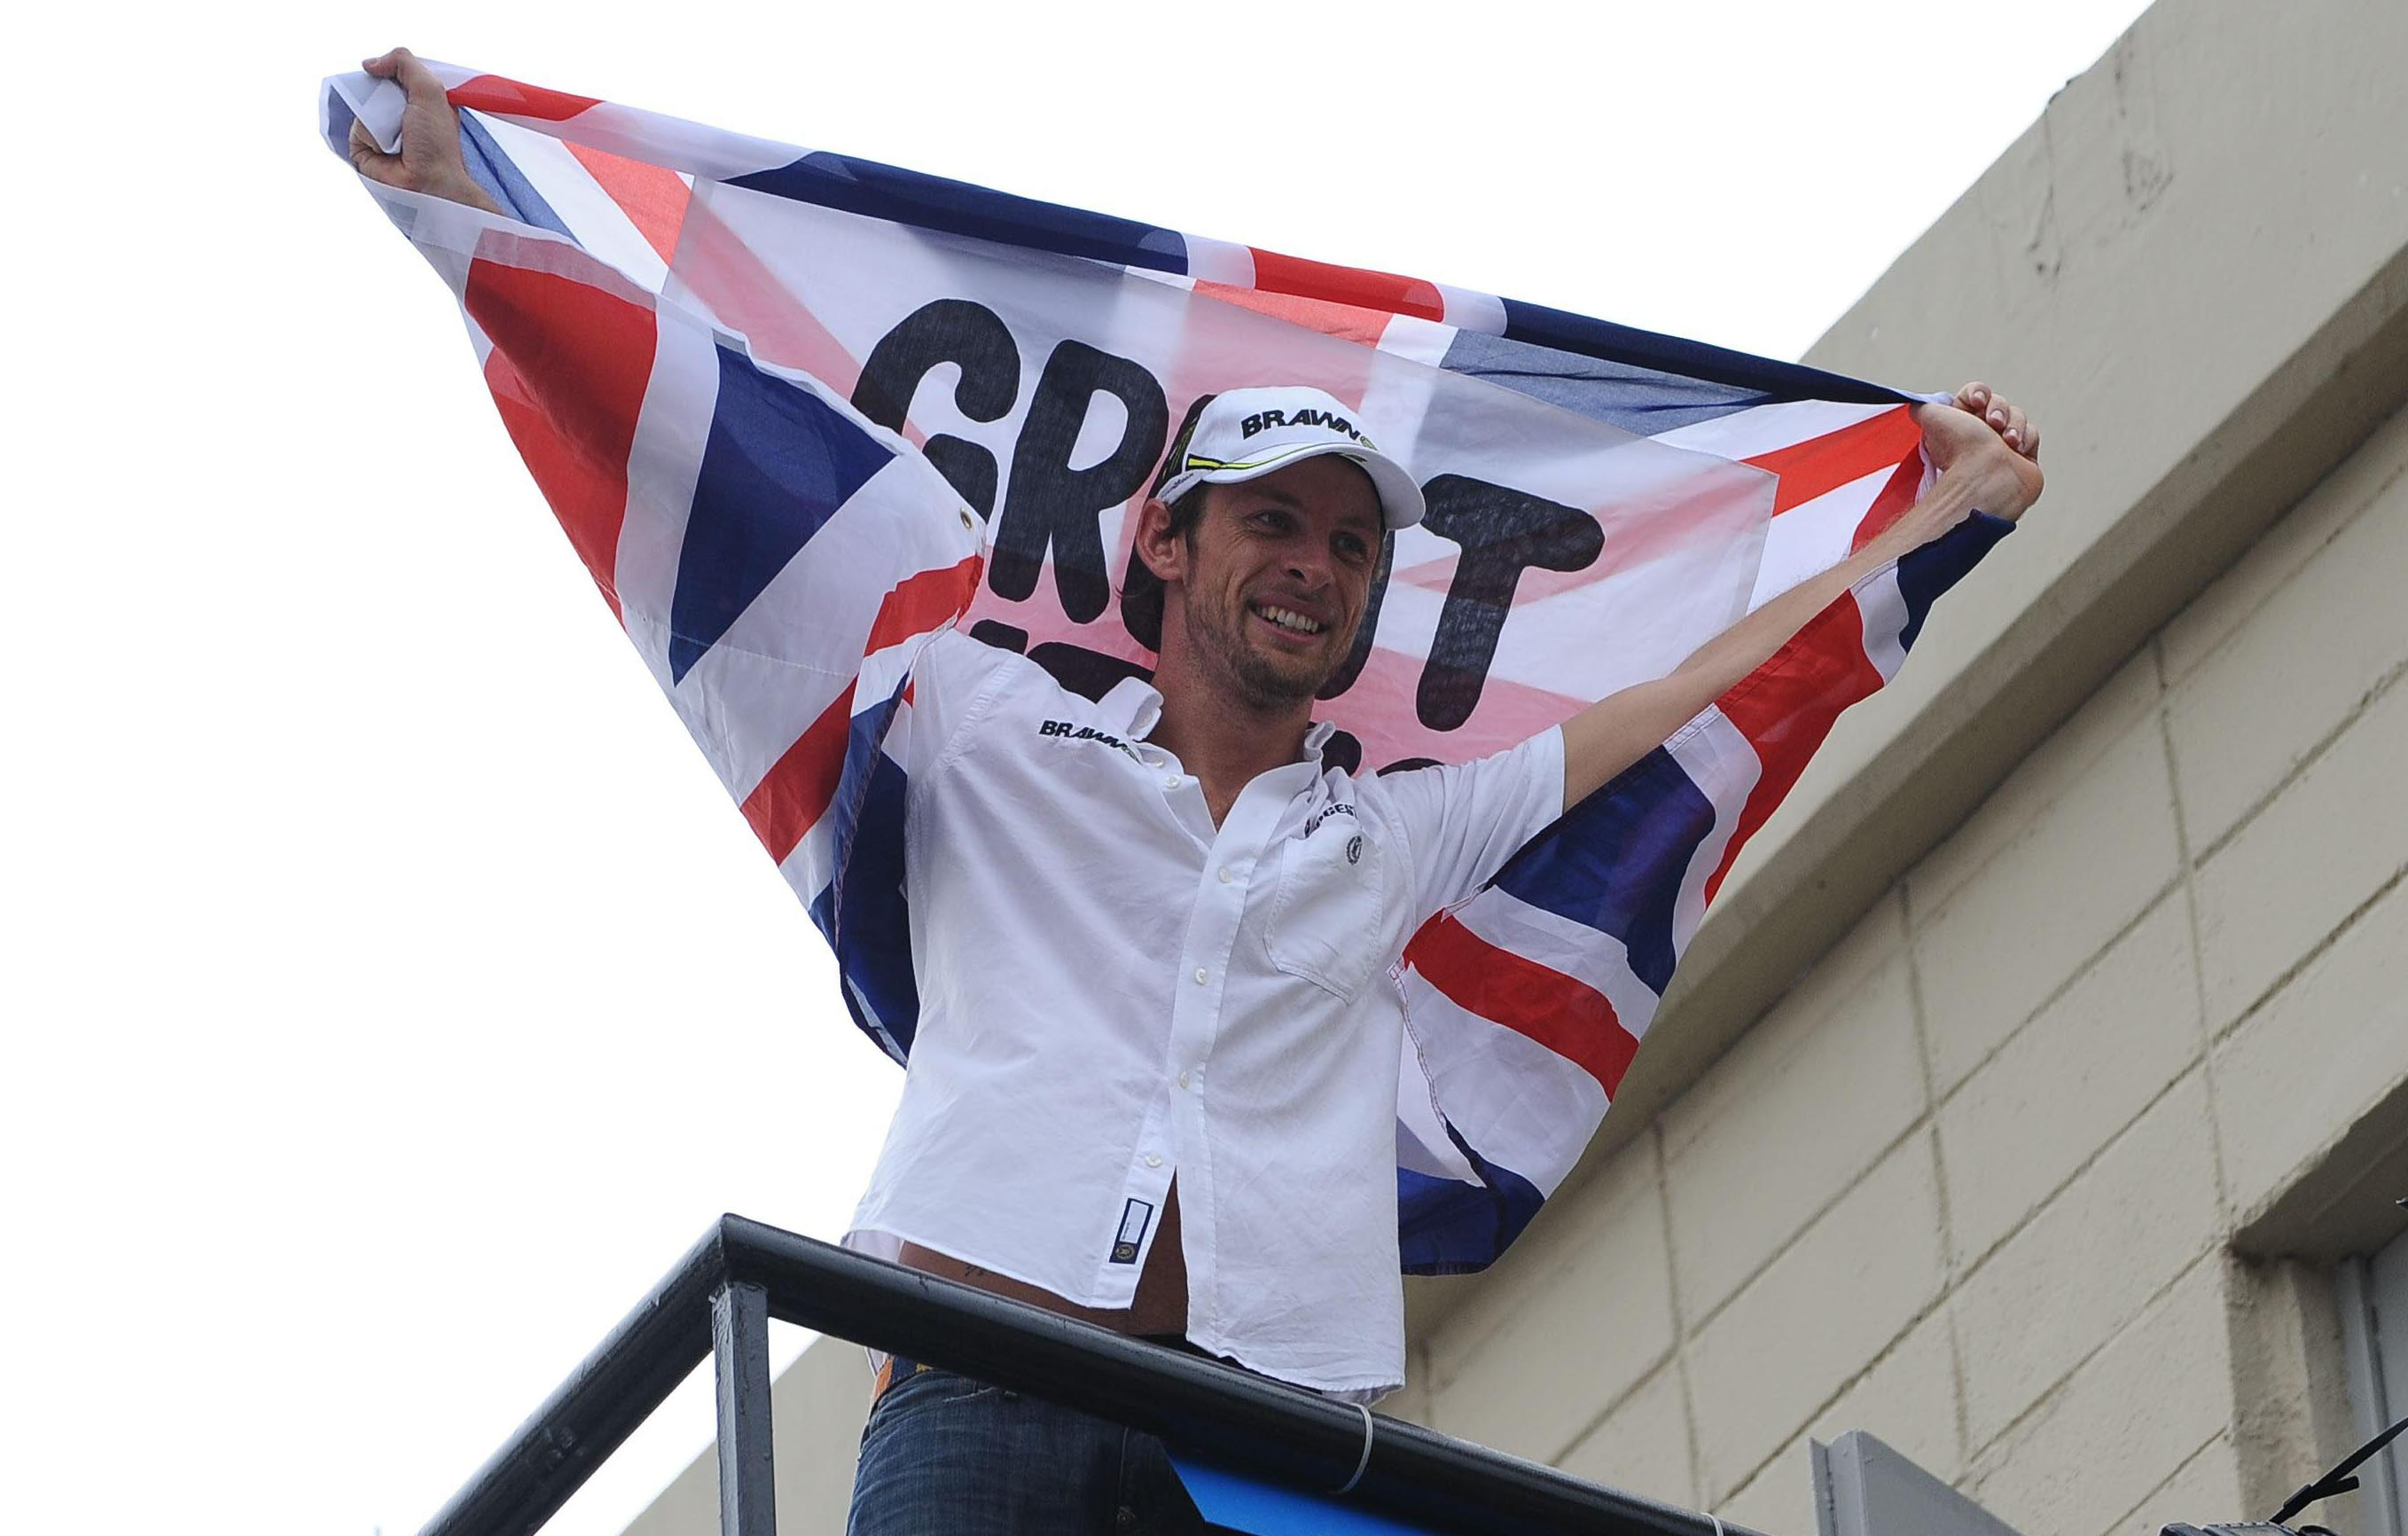 Button: I am the Champion